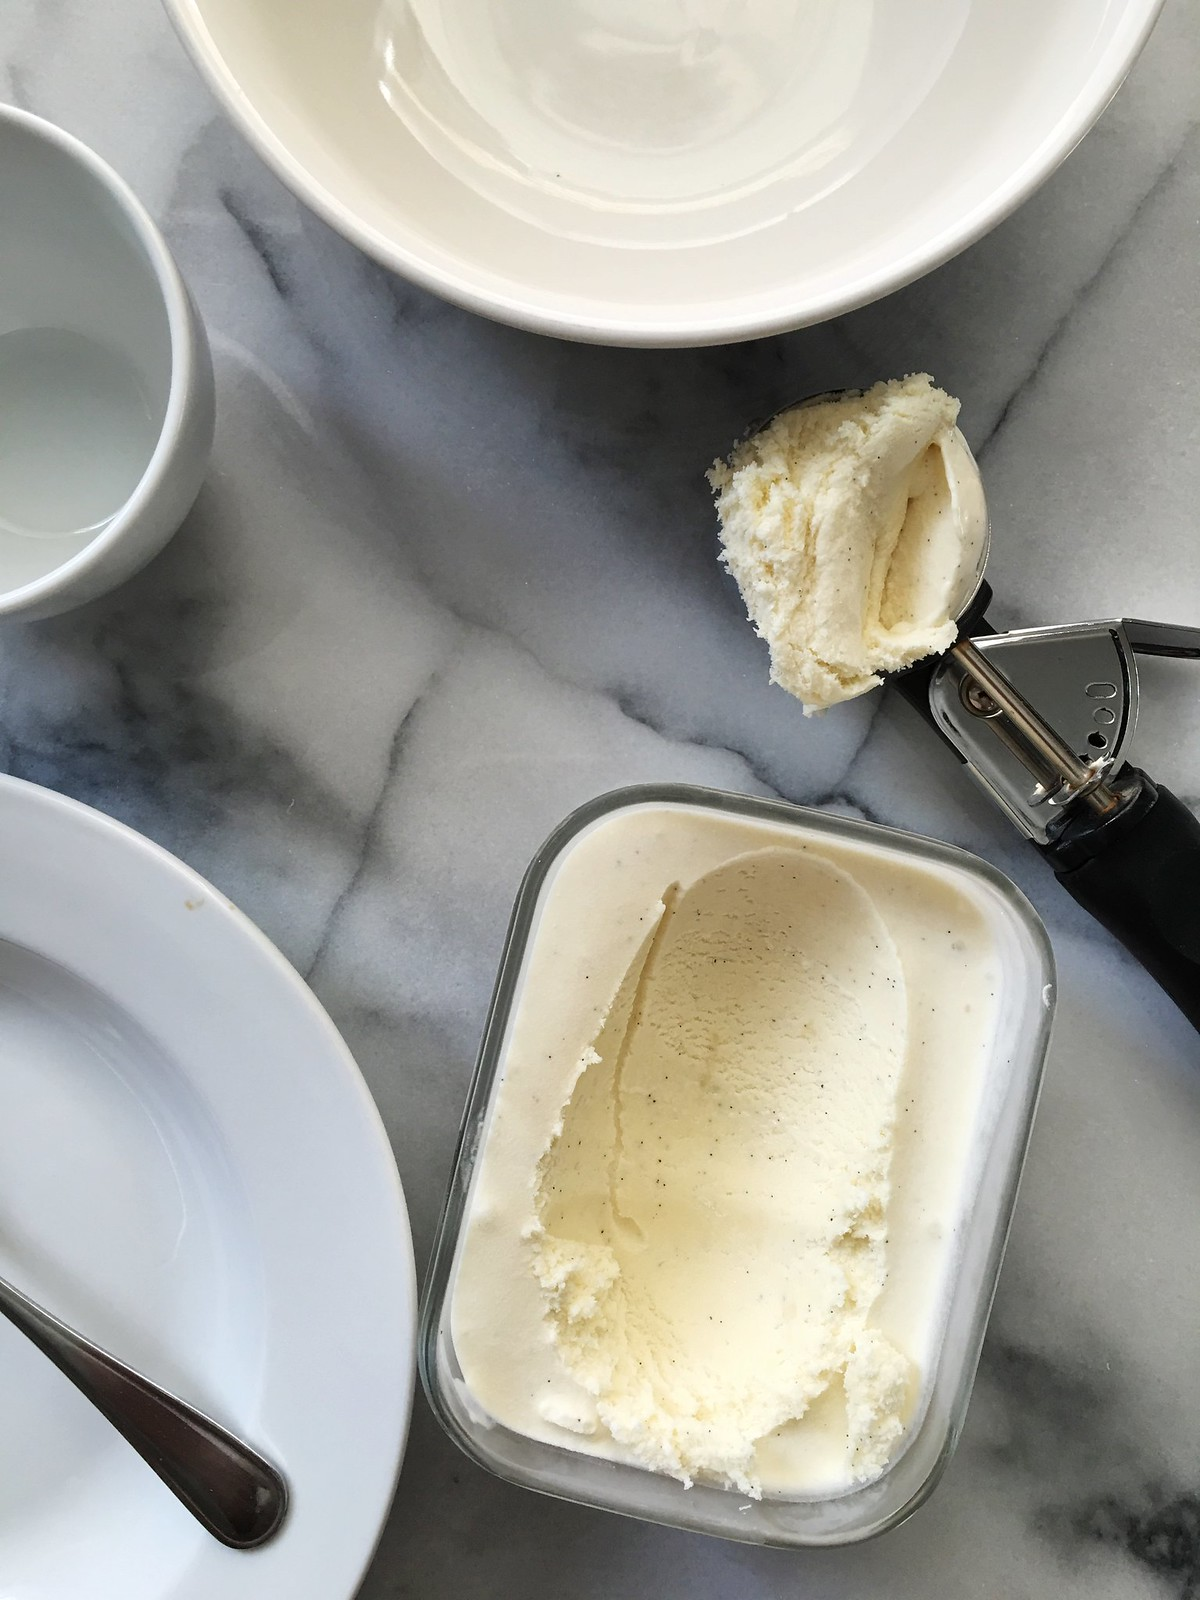 Blue Ribbon Vanilla Ice Cream from Kitchen in the Hills. Made with a creamy custard base and real vanilla bean. Summertime classic. #homemade #icecream #vanilla #summer #dessert